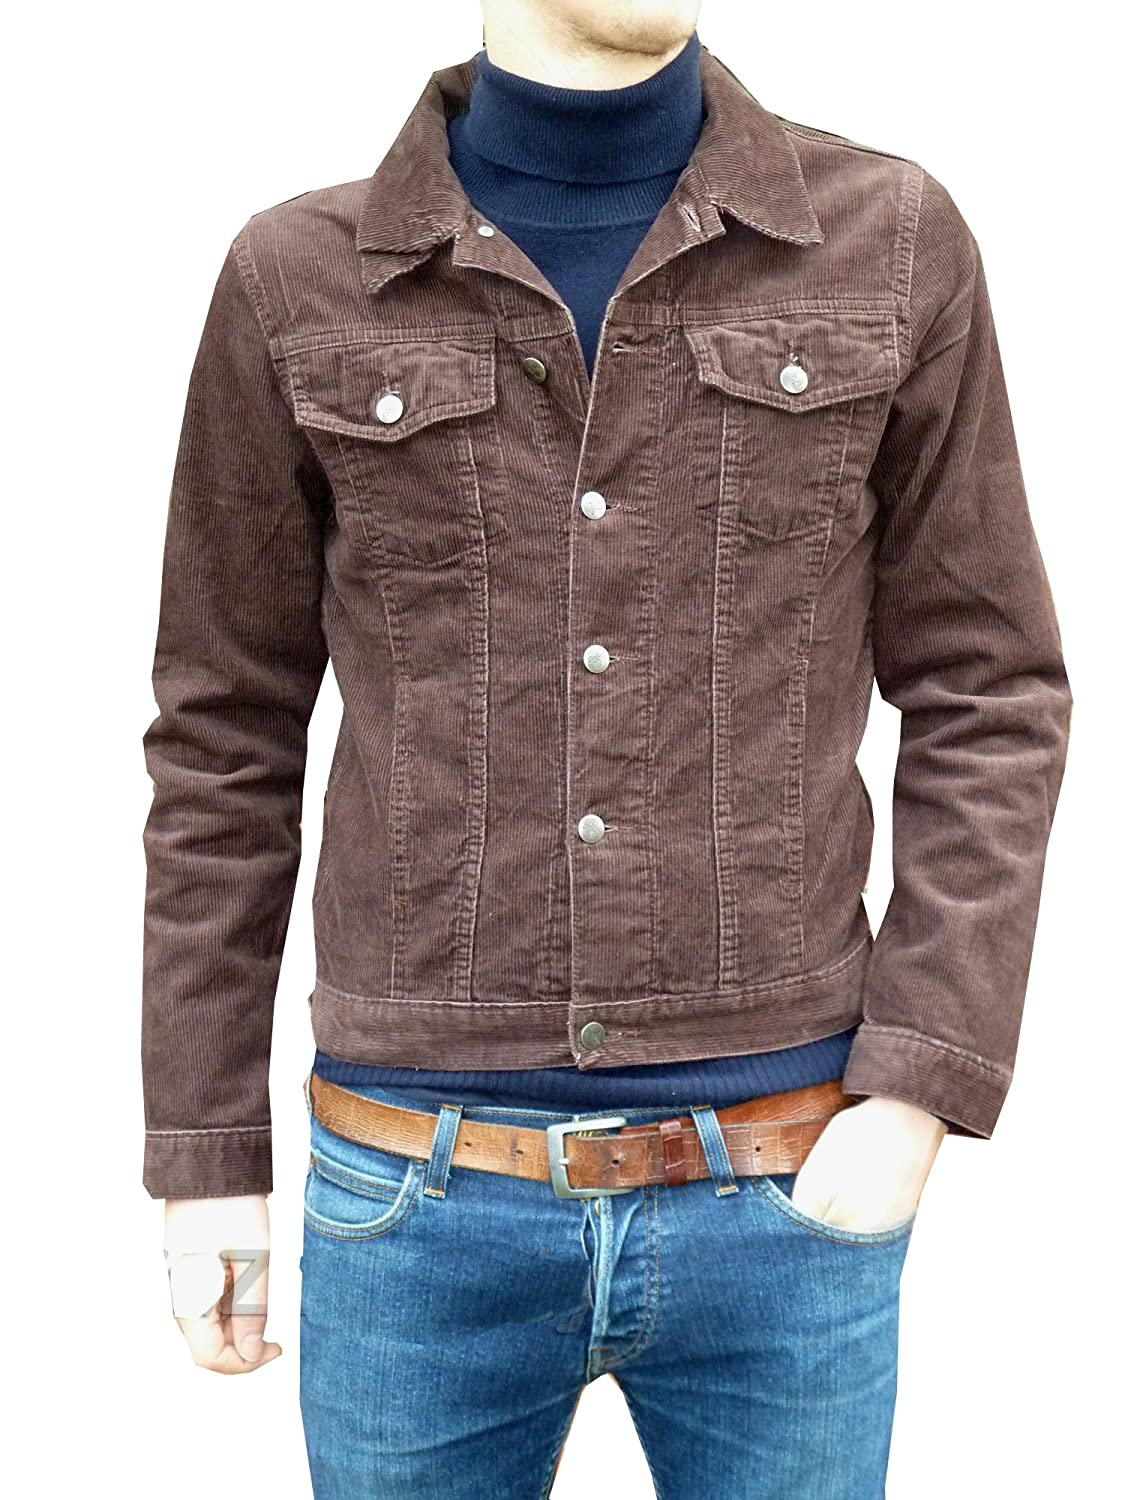 Mens Corduroy Denim Jacket Retro Vintage Brown Cord Coat Jm1269